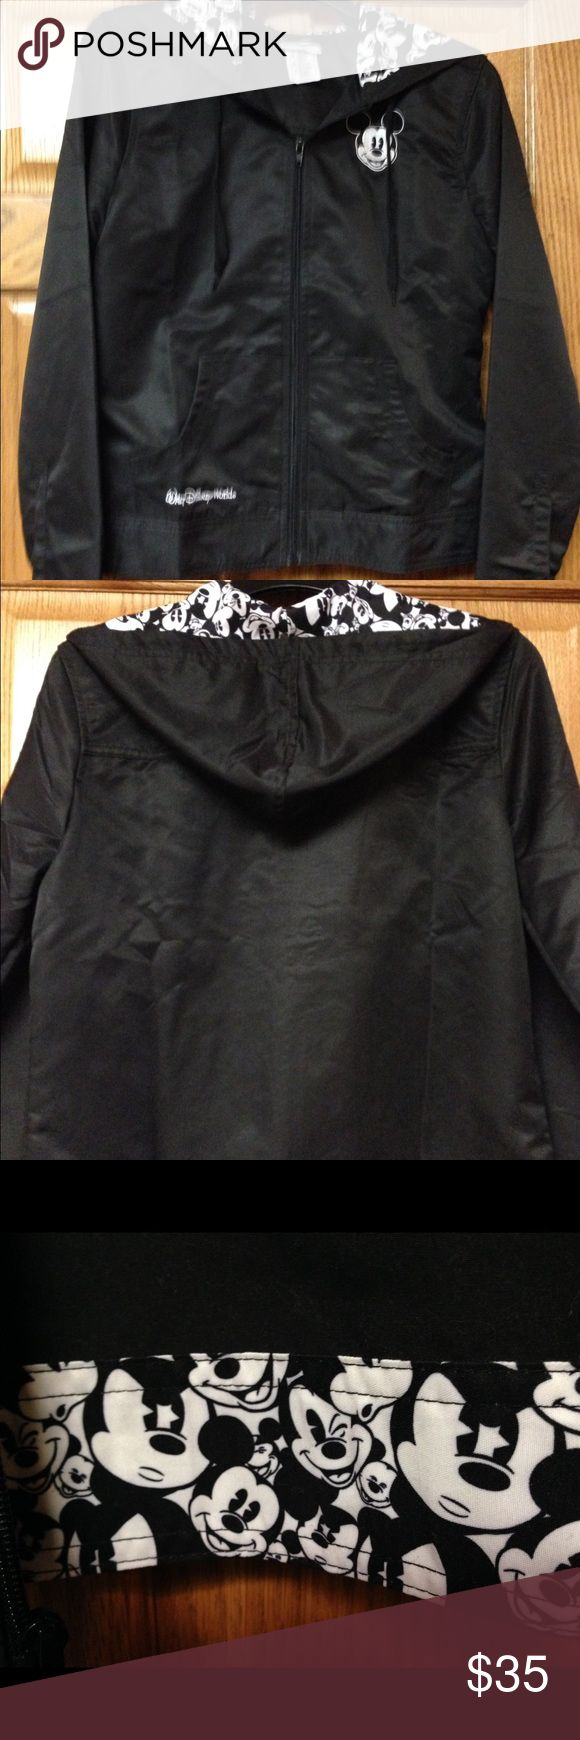 Disney women's rain jacket Super cute Disney rain jacket. Hood and inner band are collages of Mickey Mouse. Mickey Mouse emblem on front too Disney Jackets & Coats